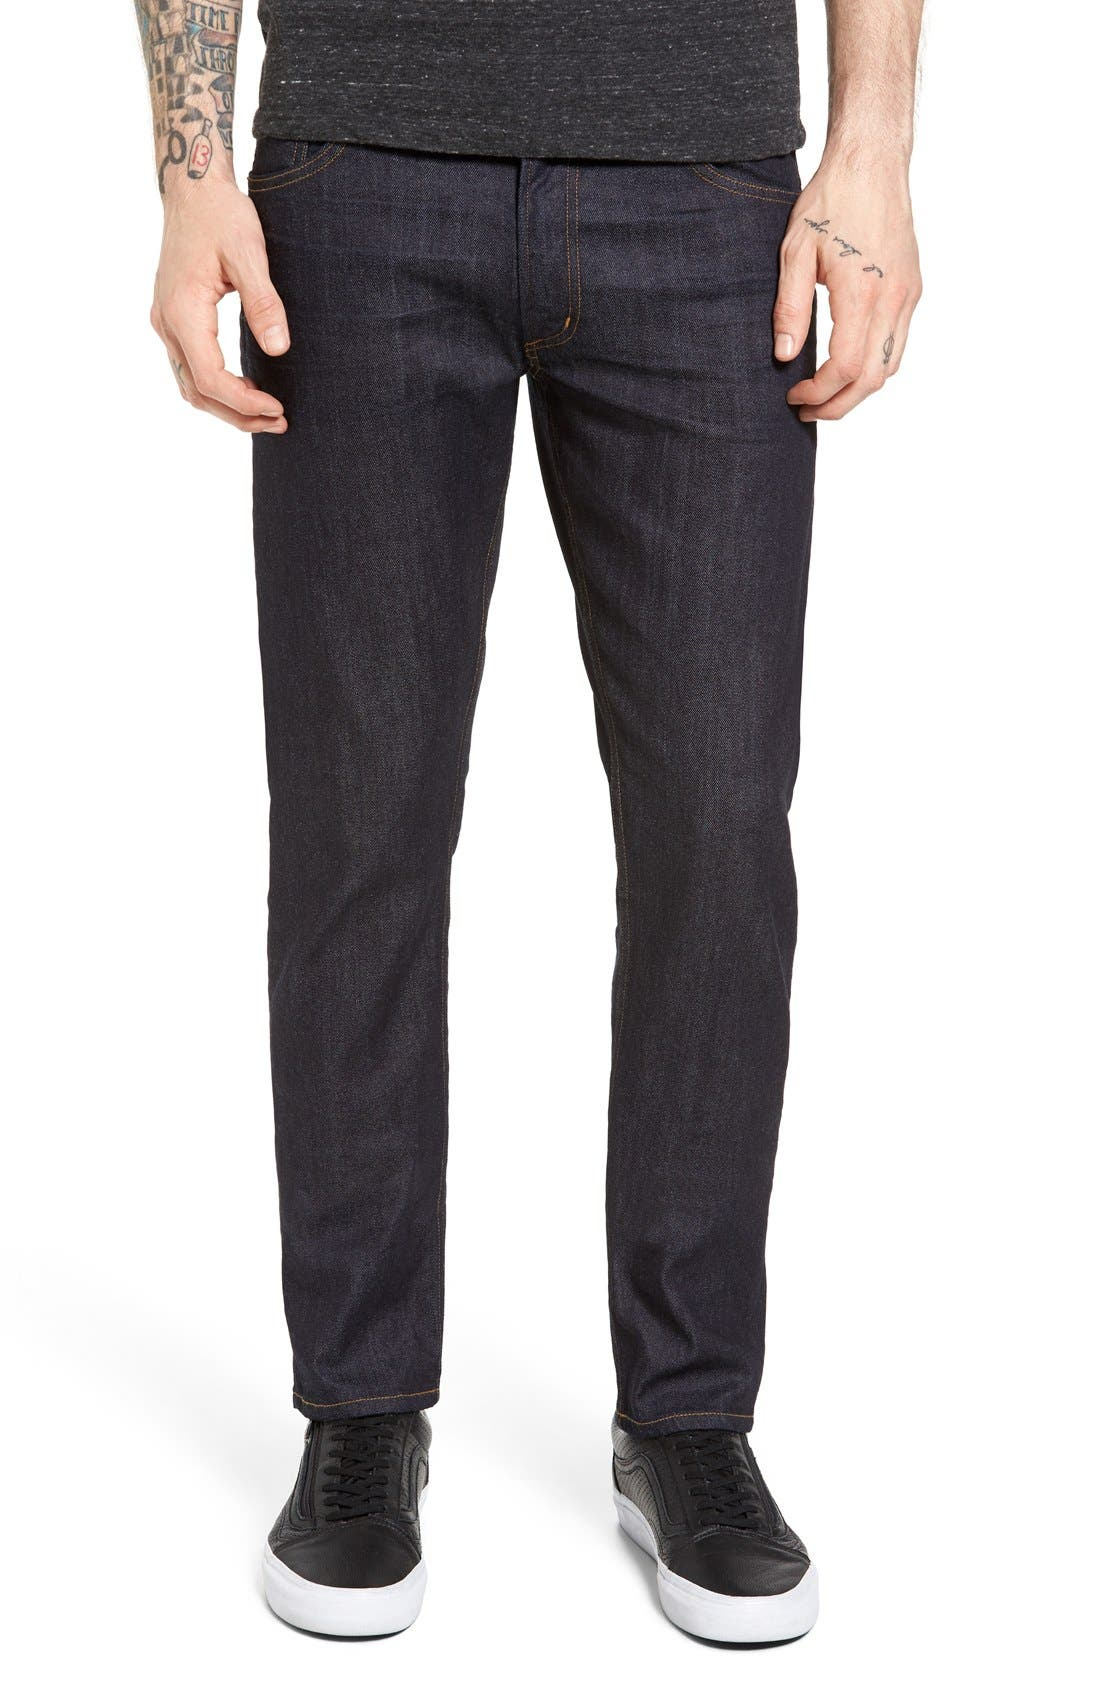 Bowery Slim Fit Jeans,                         Main,                         color, 432